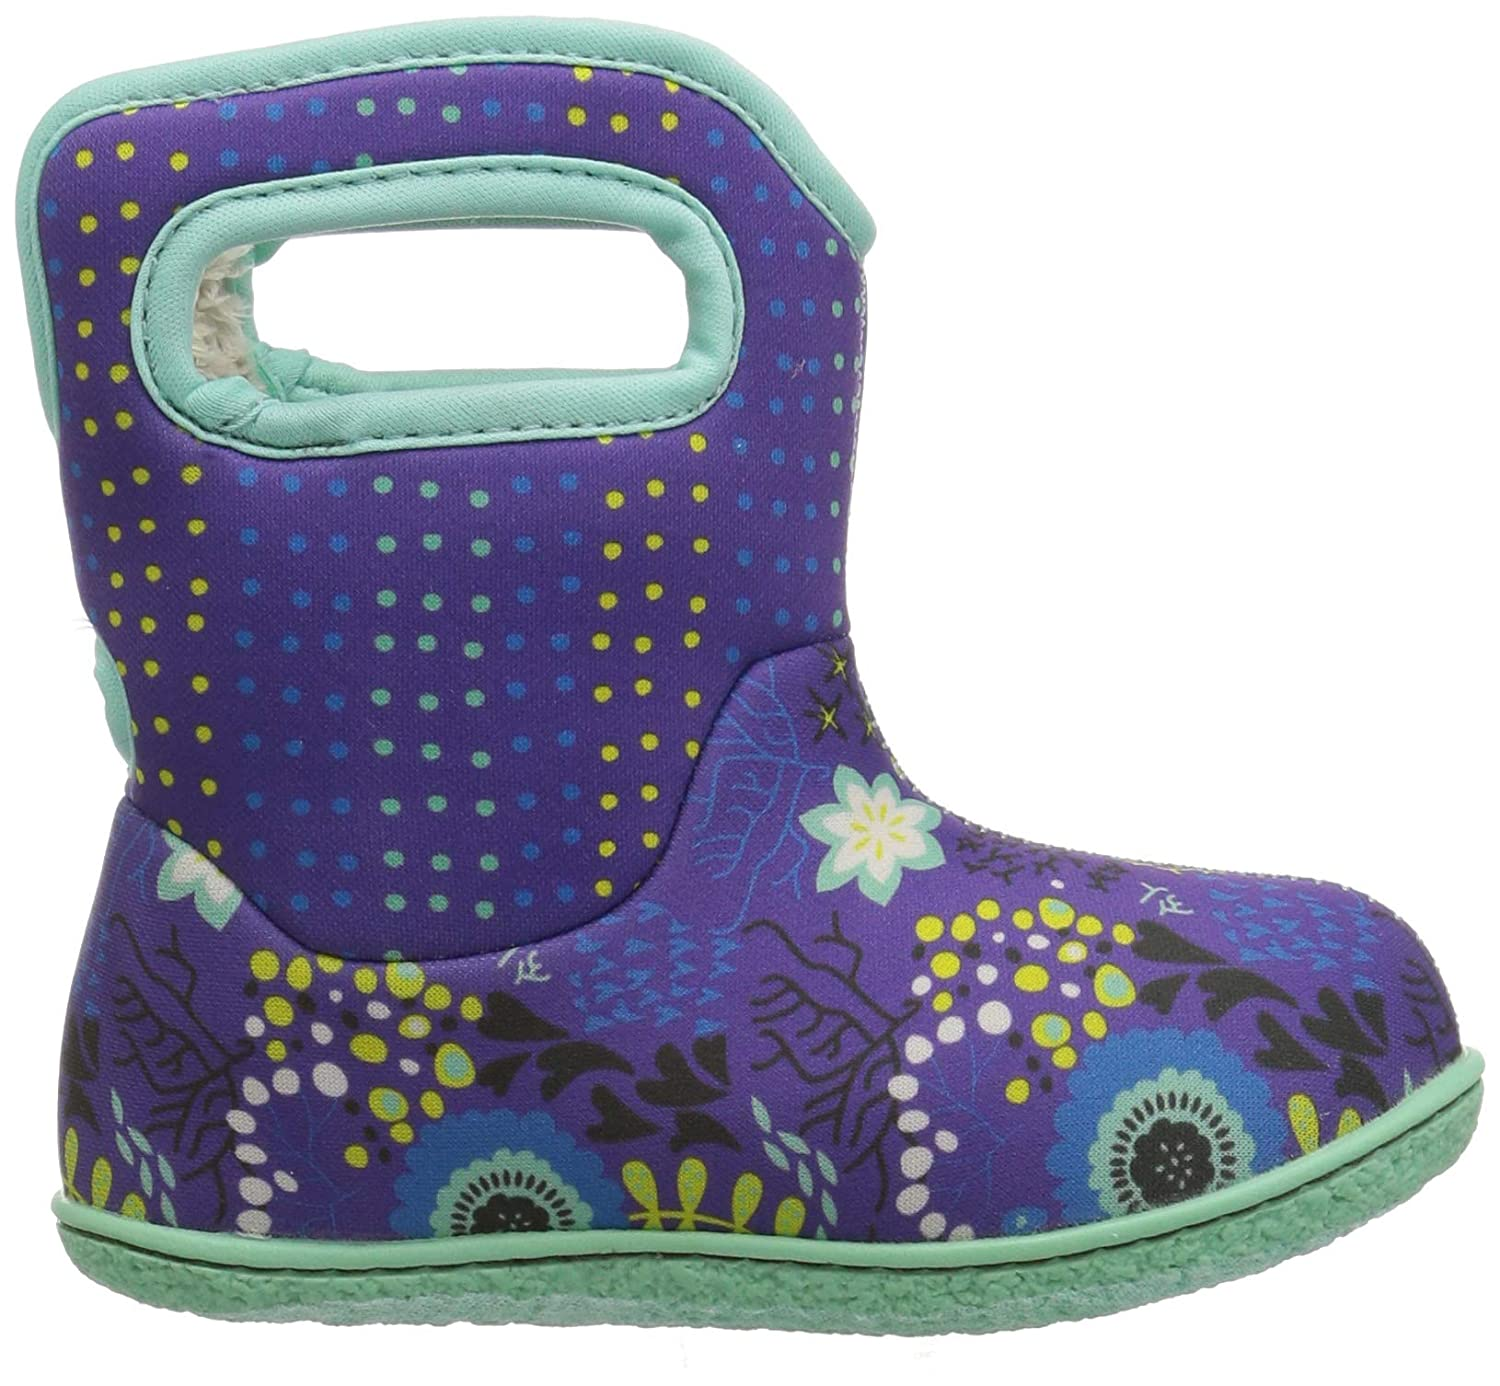 EU 25 Bogs Girls Baby Reef Violet Multi Insulated Washable WARM Wellies Boots 722971-UK 8